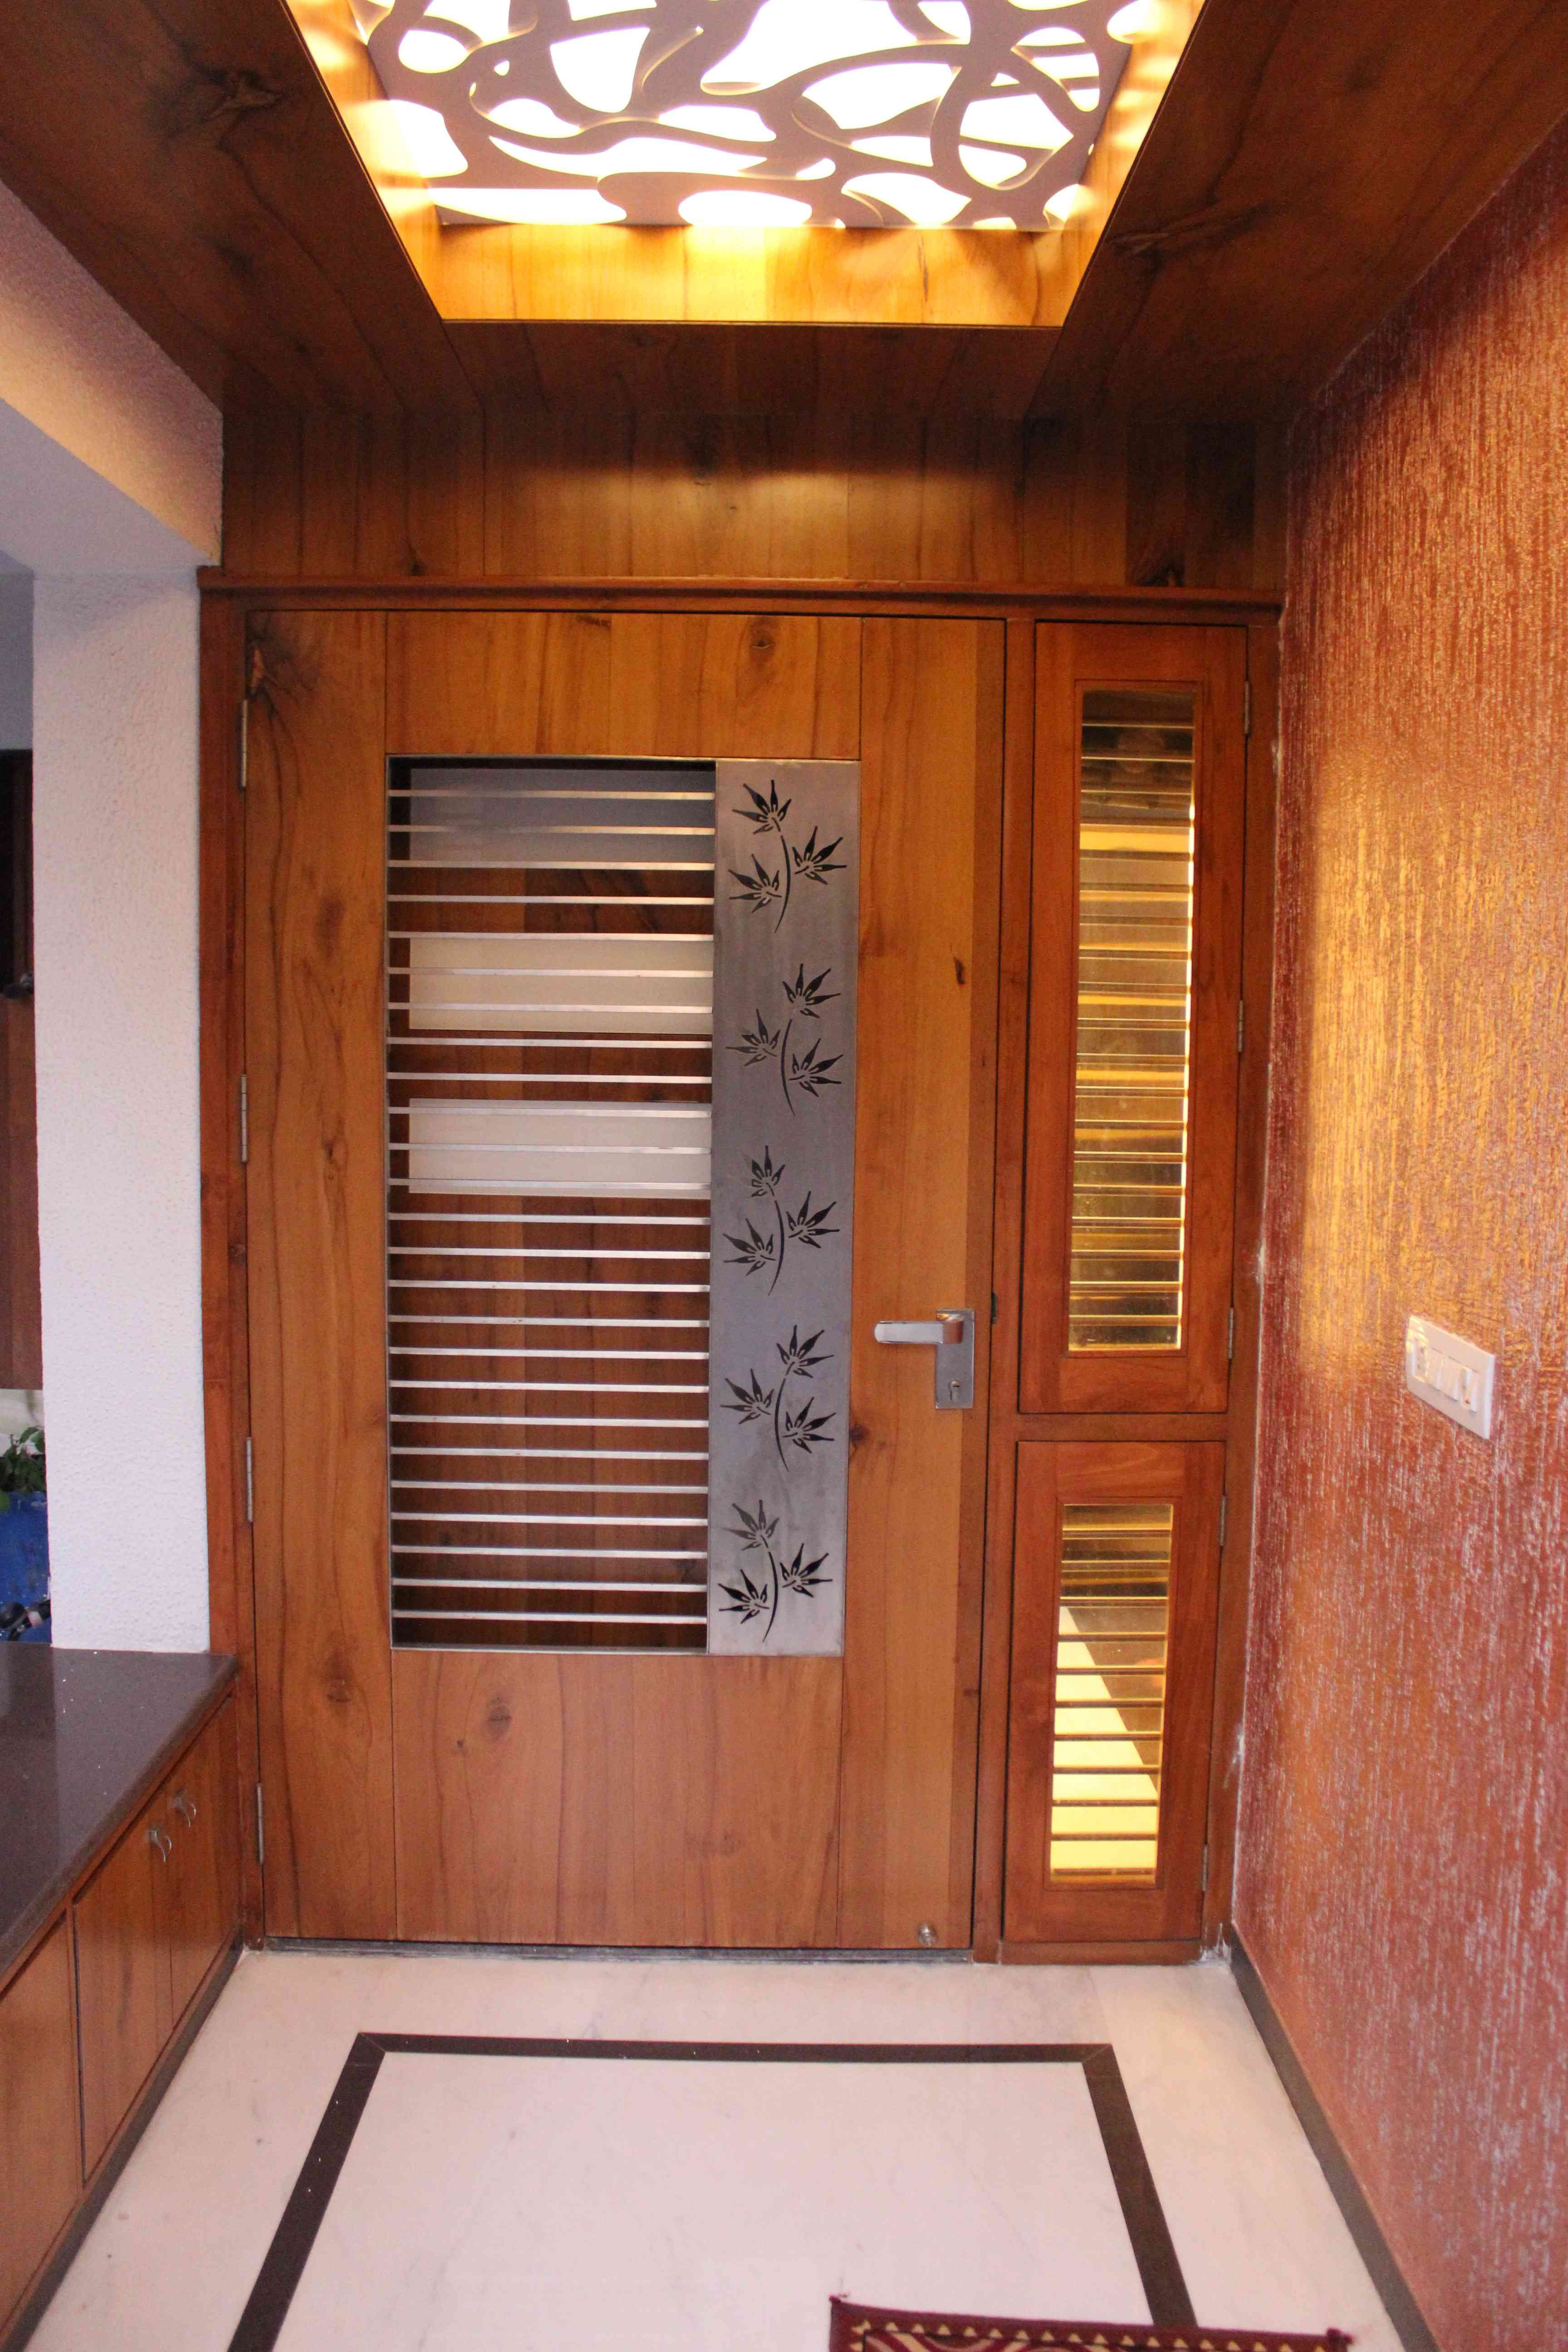 Residence interiors at ranip ahmedabad 1 jpg 3 456 5 184 for Front door design for flats